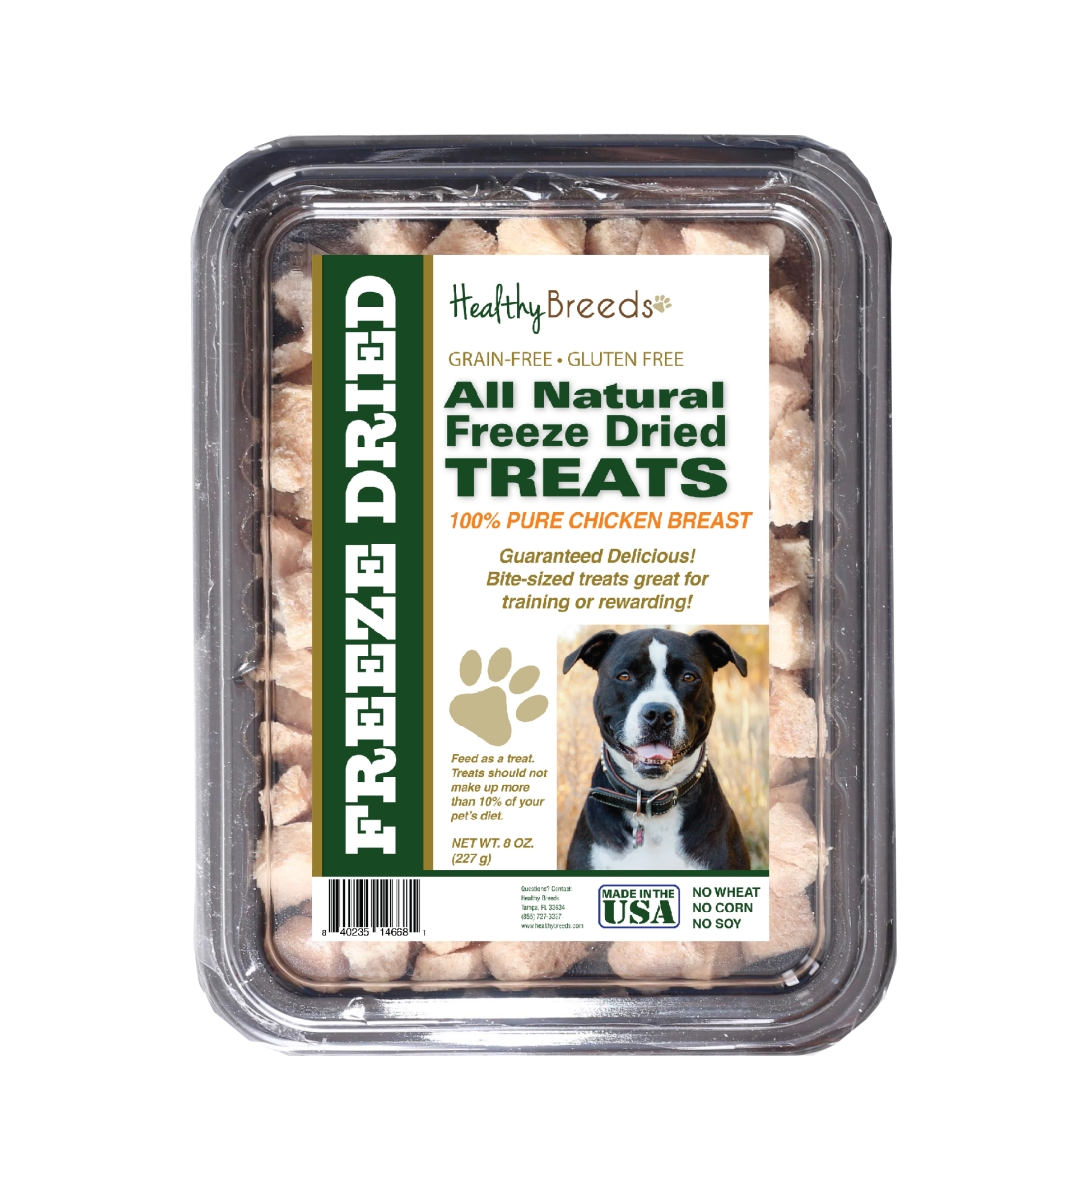 Healthy Breeds 840235146681 8 oz Pit Bull All Natural Freeze Dried Treats Chicken Breast